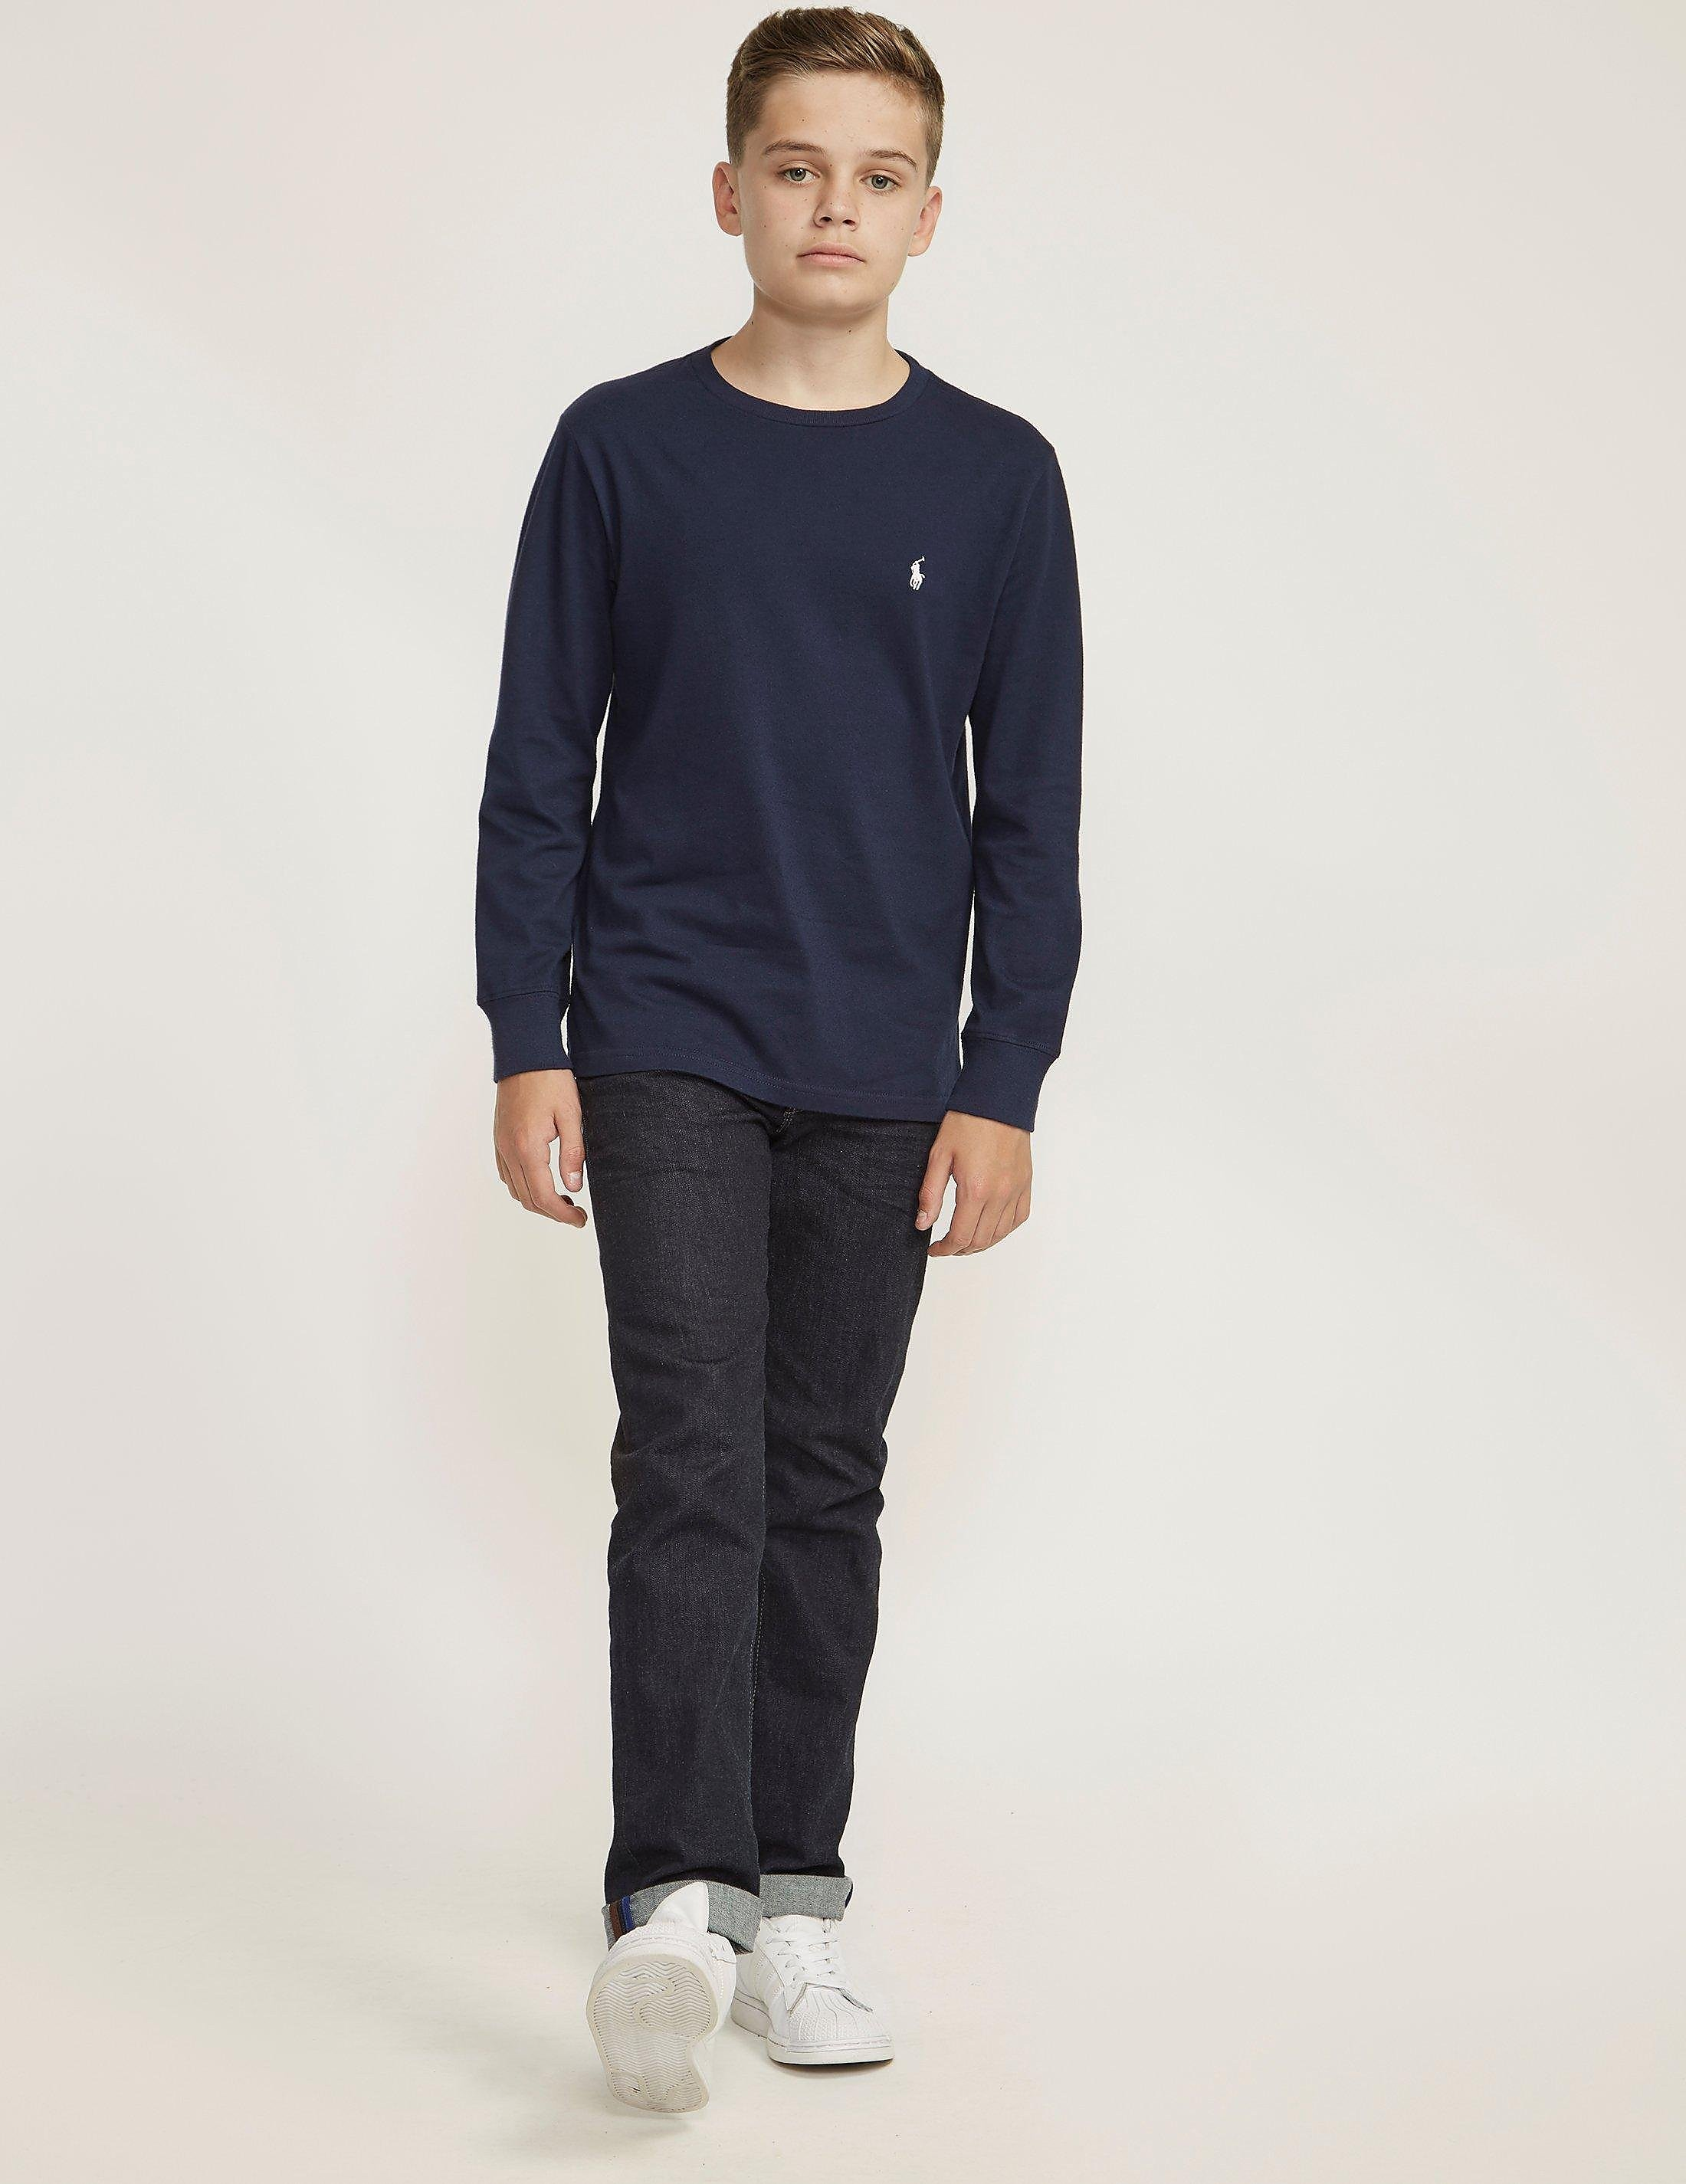 Polo Ralph Lauren Long Sleeve Crew Neck T-Shirt